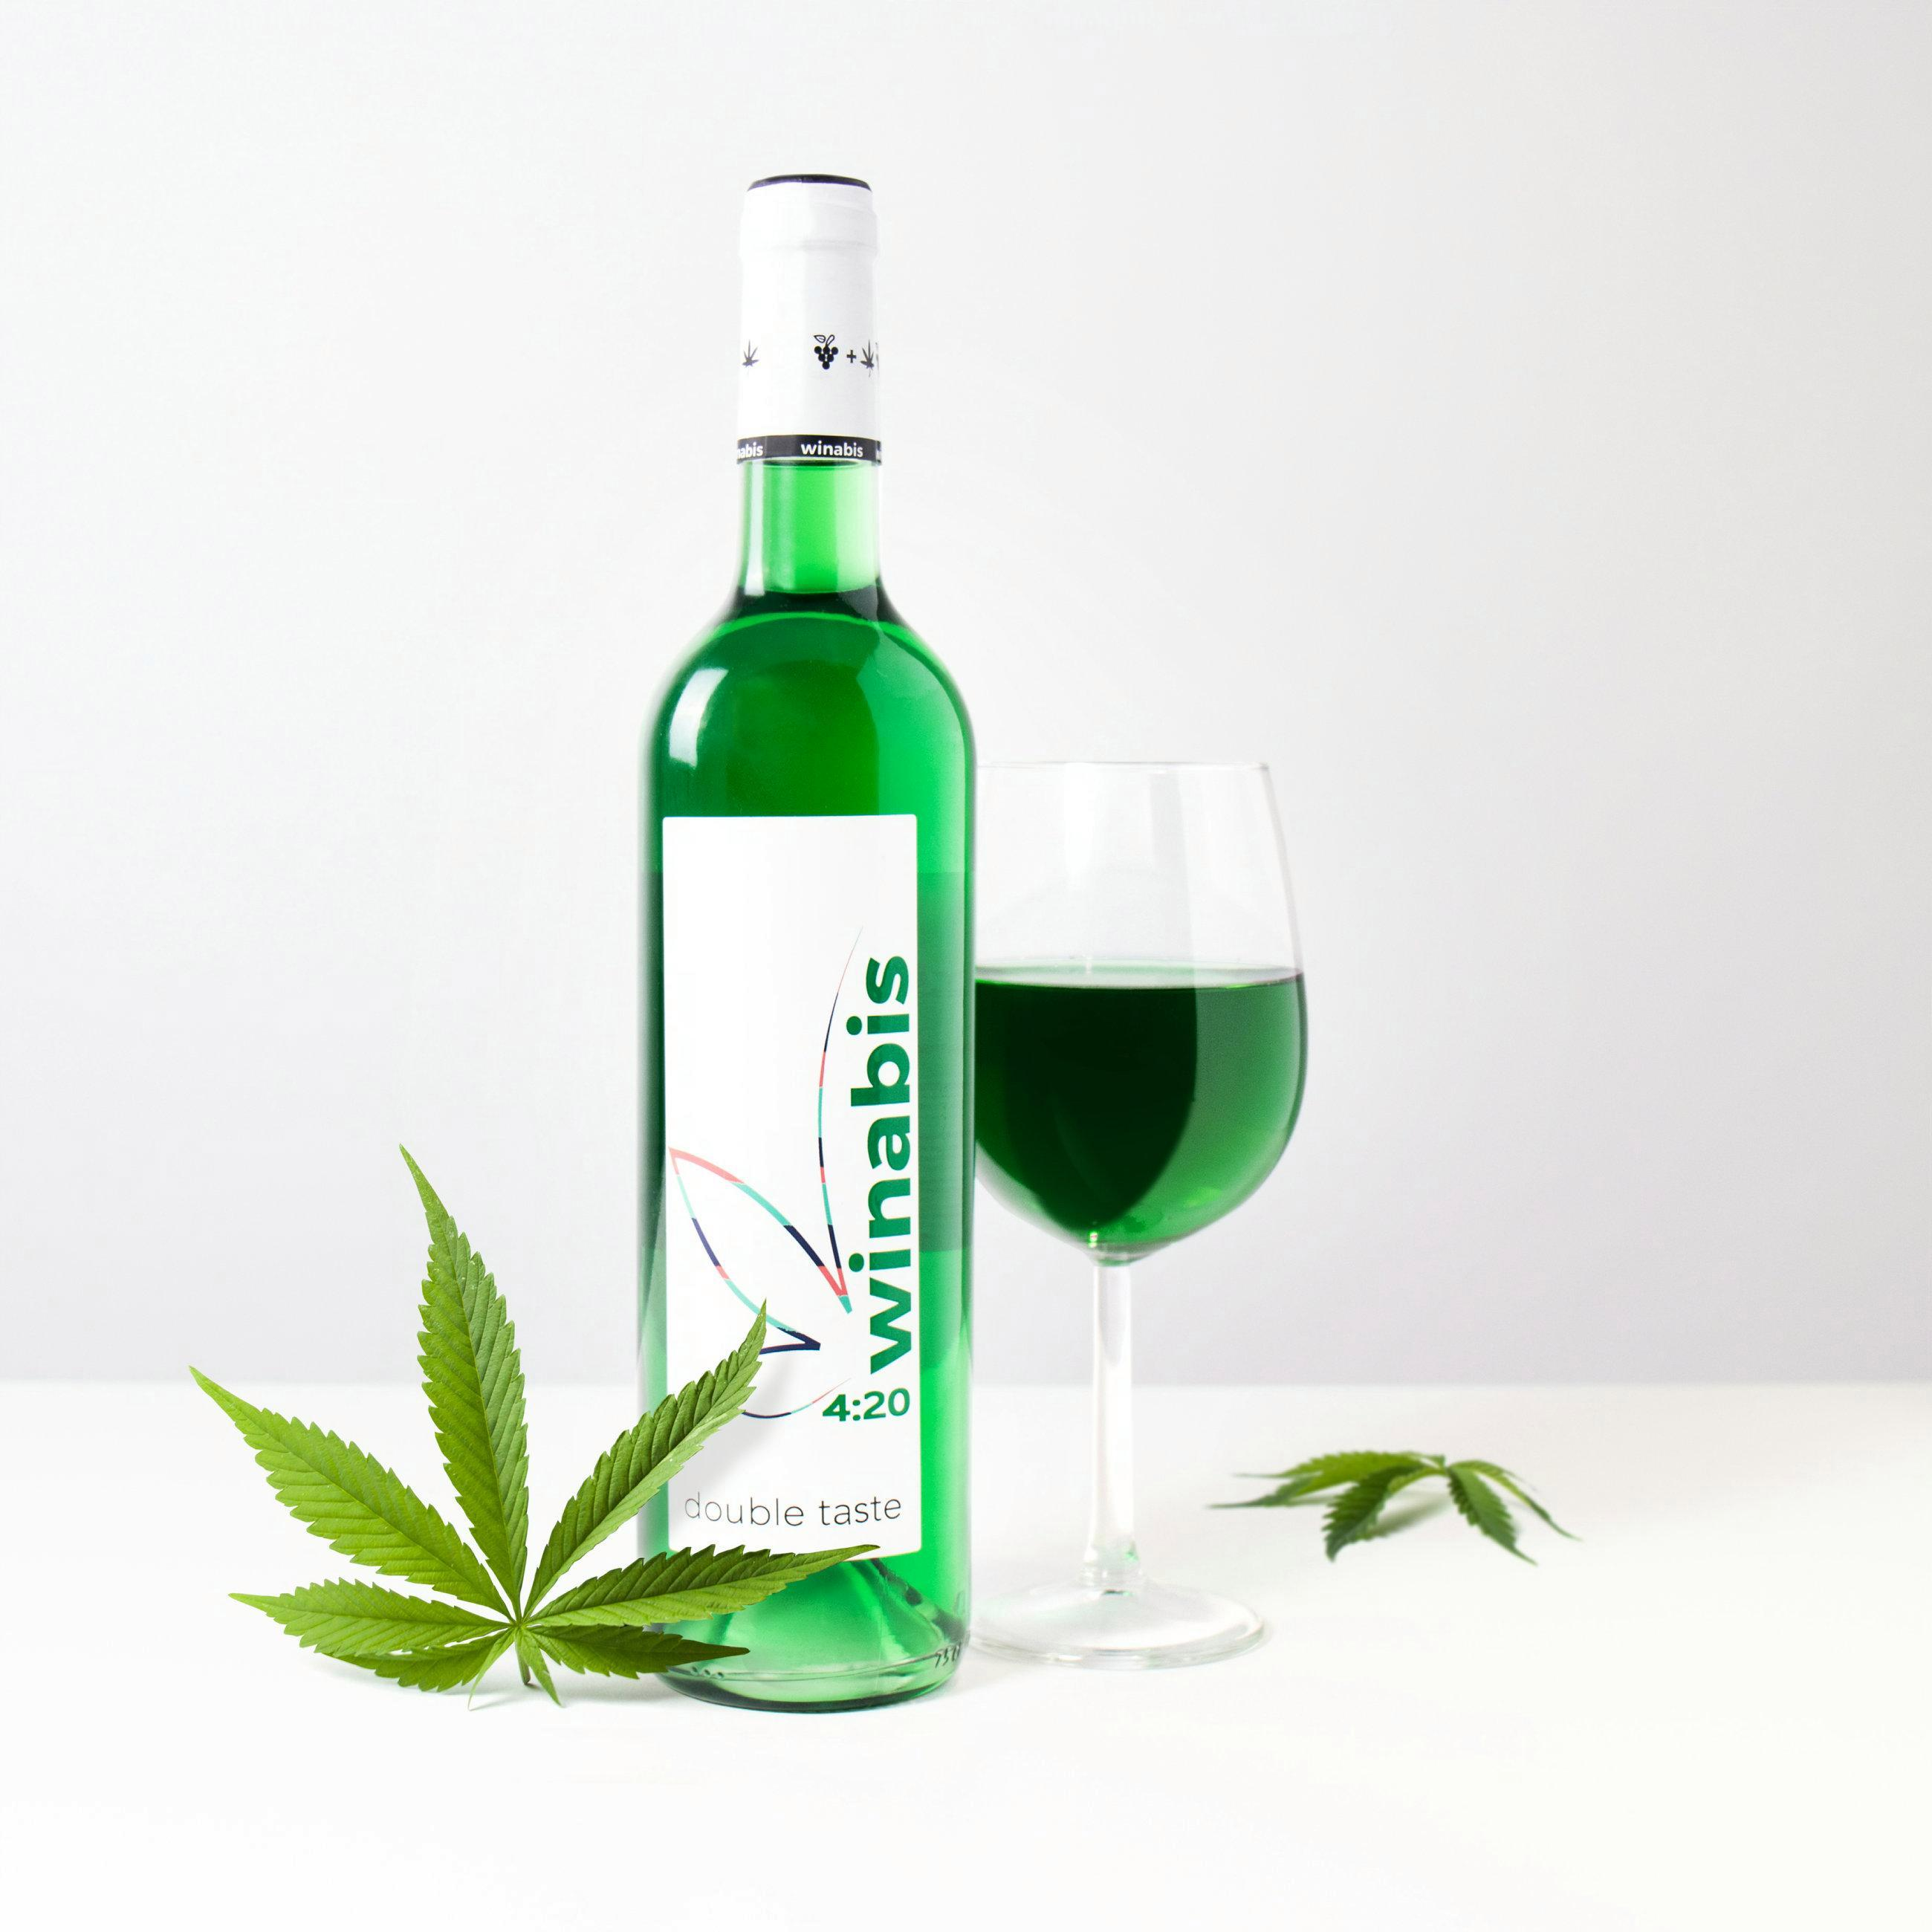 Green wine made with cannabis is on sale just in time for Christmas – but don't worry, it won't get you stoned